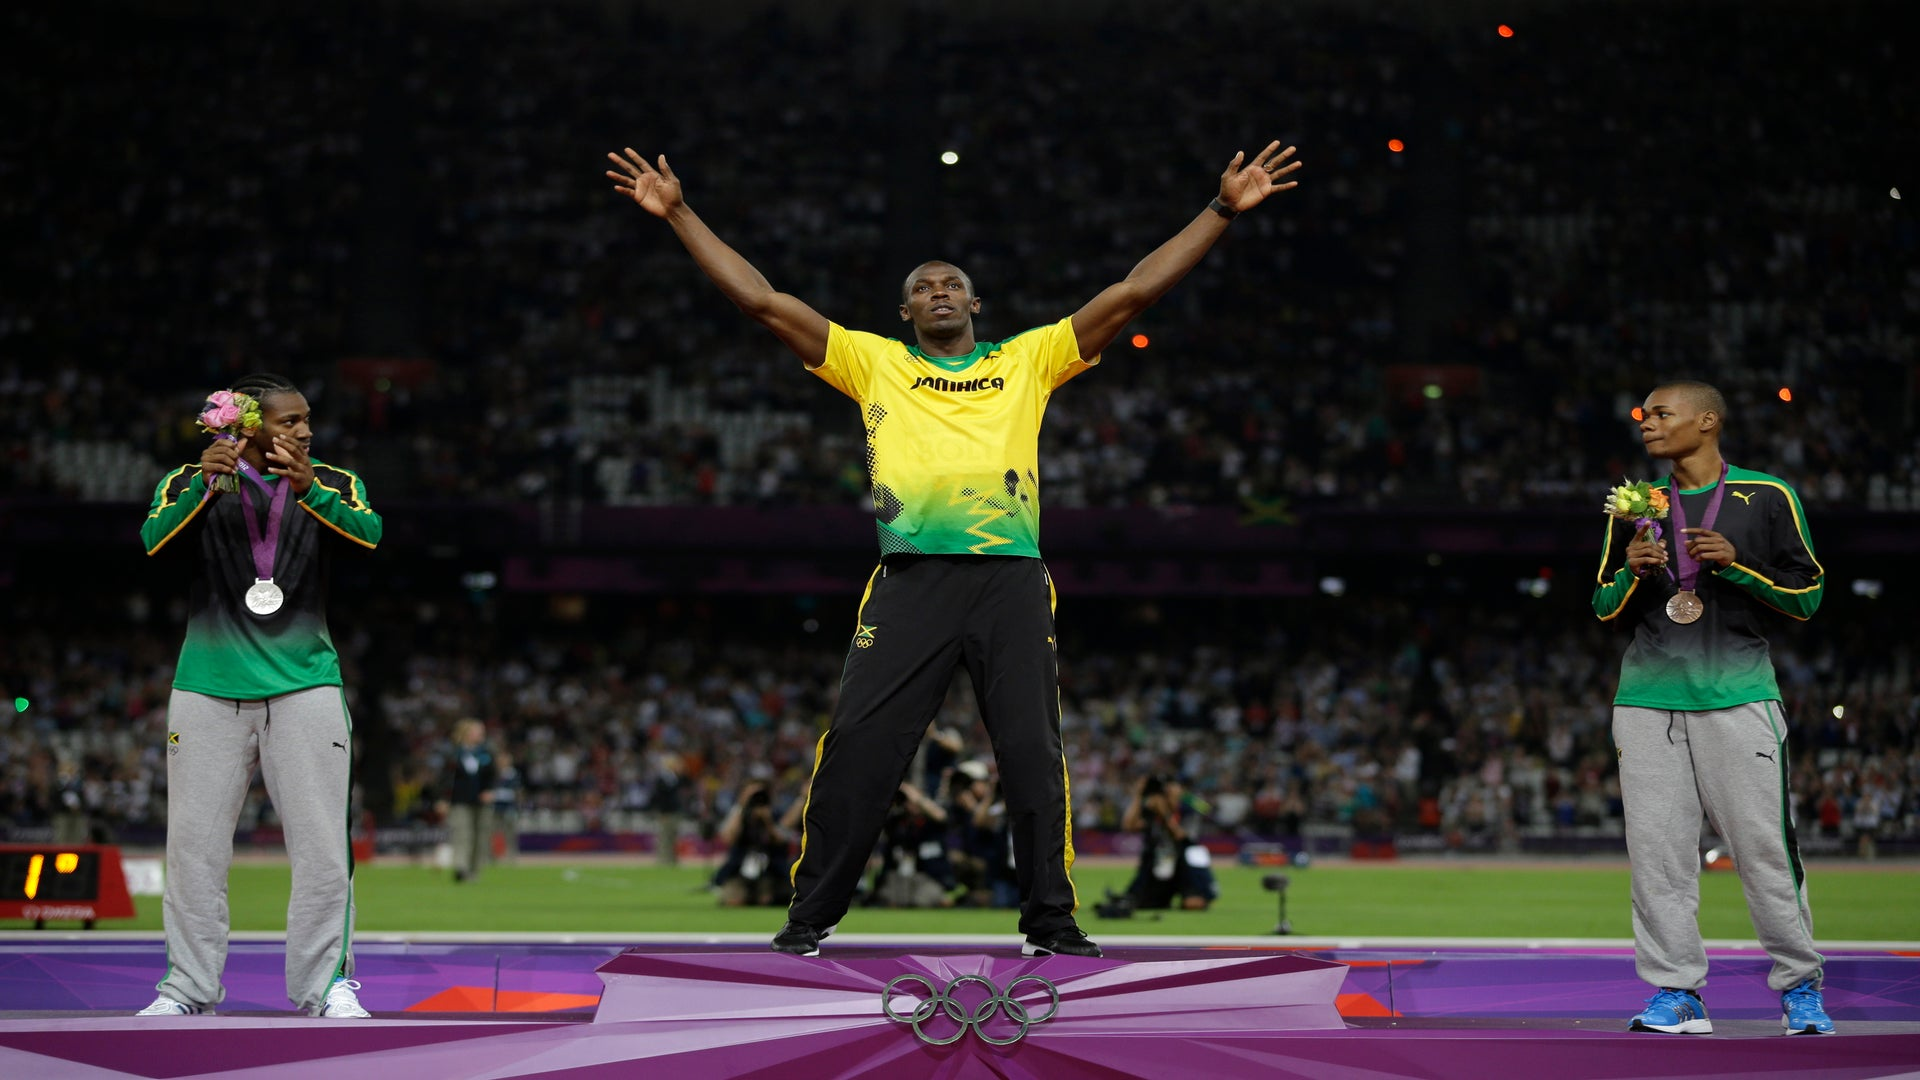 Coffee Talk: Usain Bolt Wins Fifth Gold Medal, Sprints into Olympic History